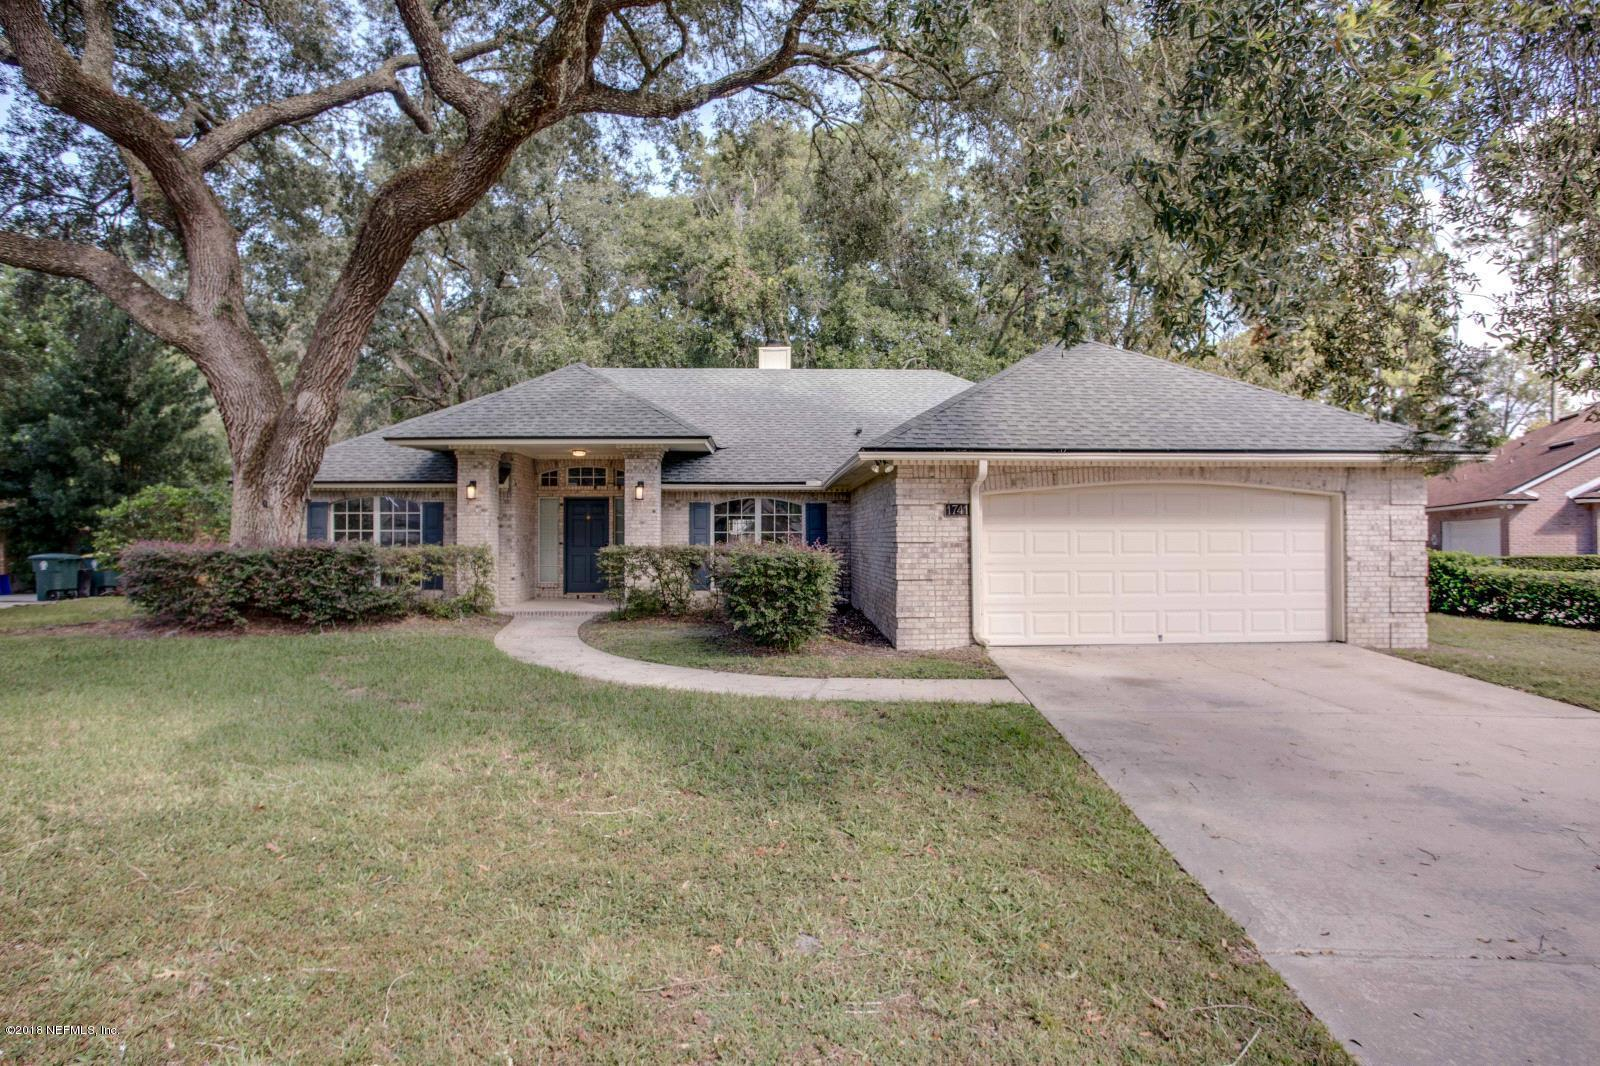 1741 LORD BYRON, JACKSONVILLE, FLORIDA 32223, 3 Bedrooms Bedrooms, ,2 BathroomsBathrooms,Residential - single family,For sale,LORD BYRON,963275